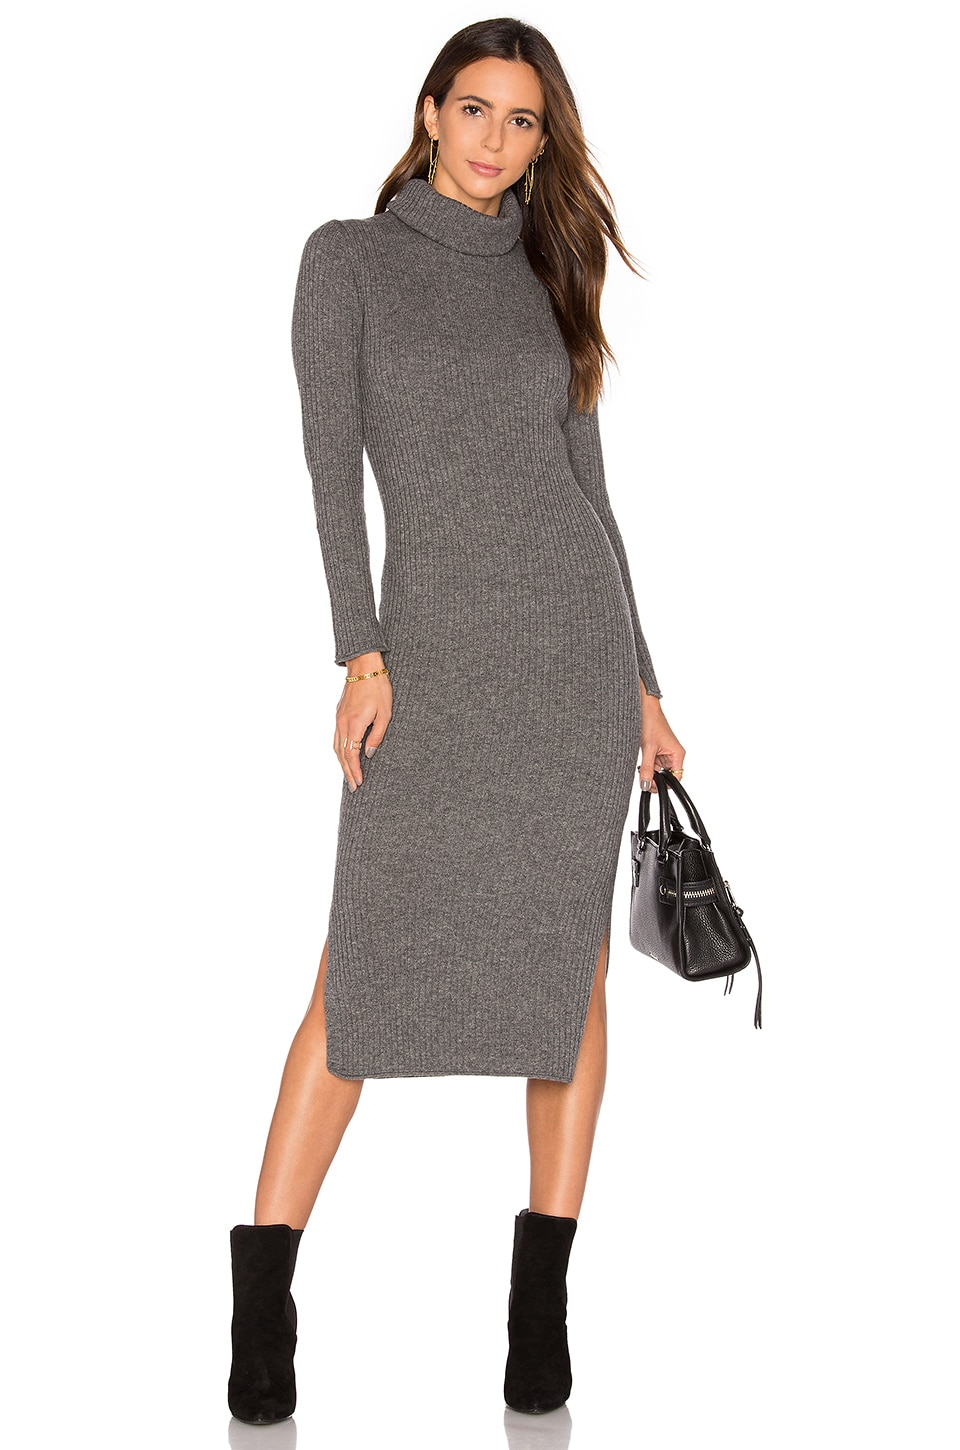 Alice + Olivia Gwen Rib Midi Dress in Charcoal